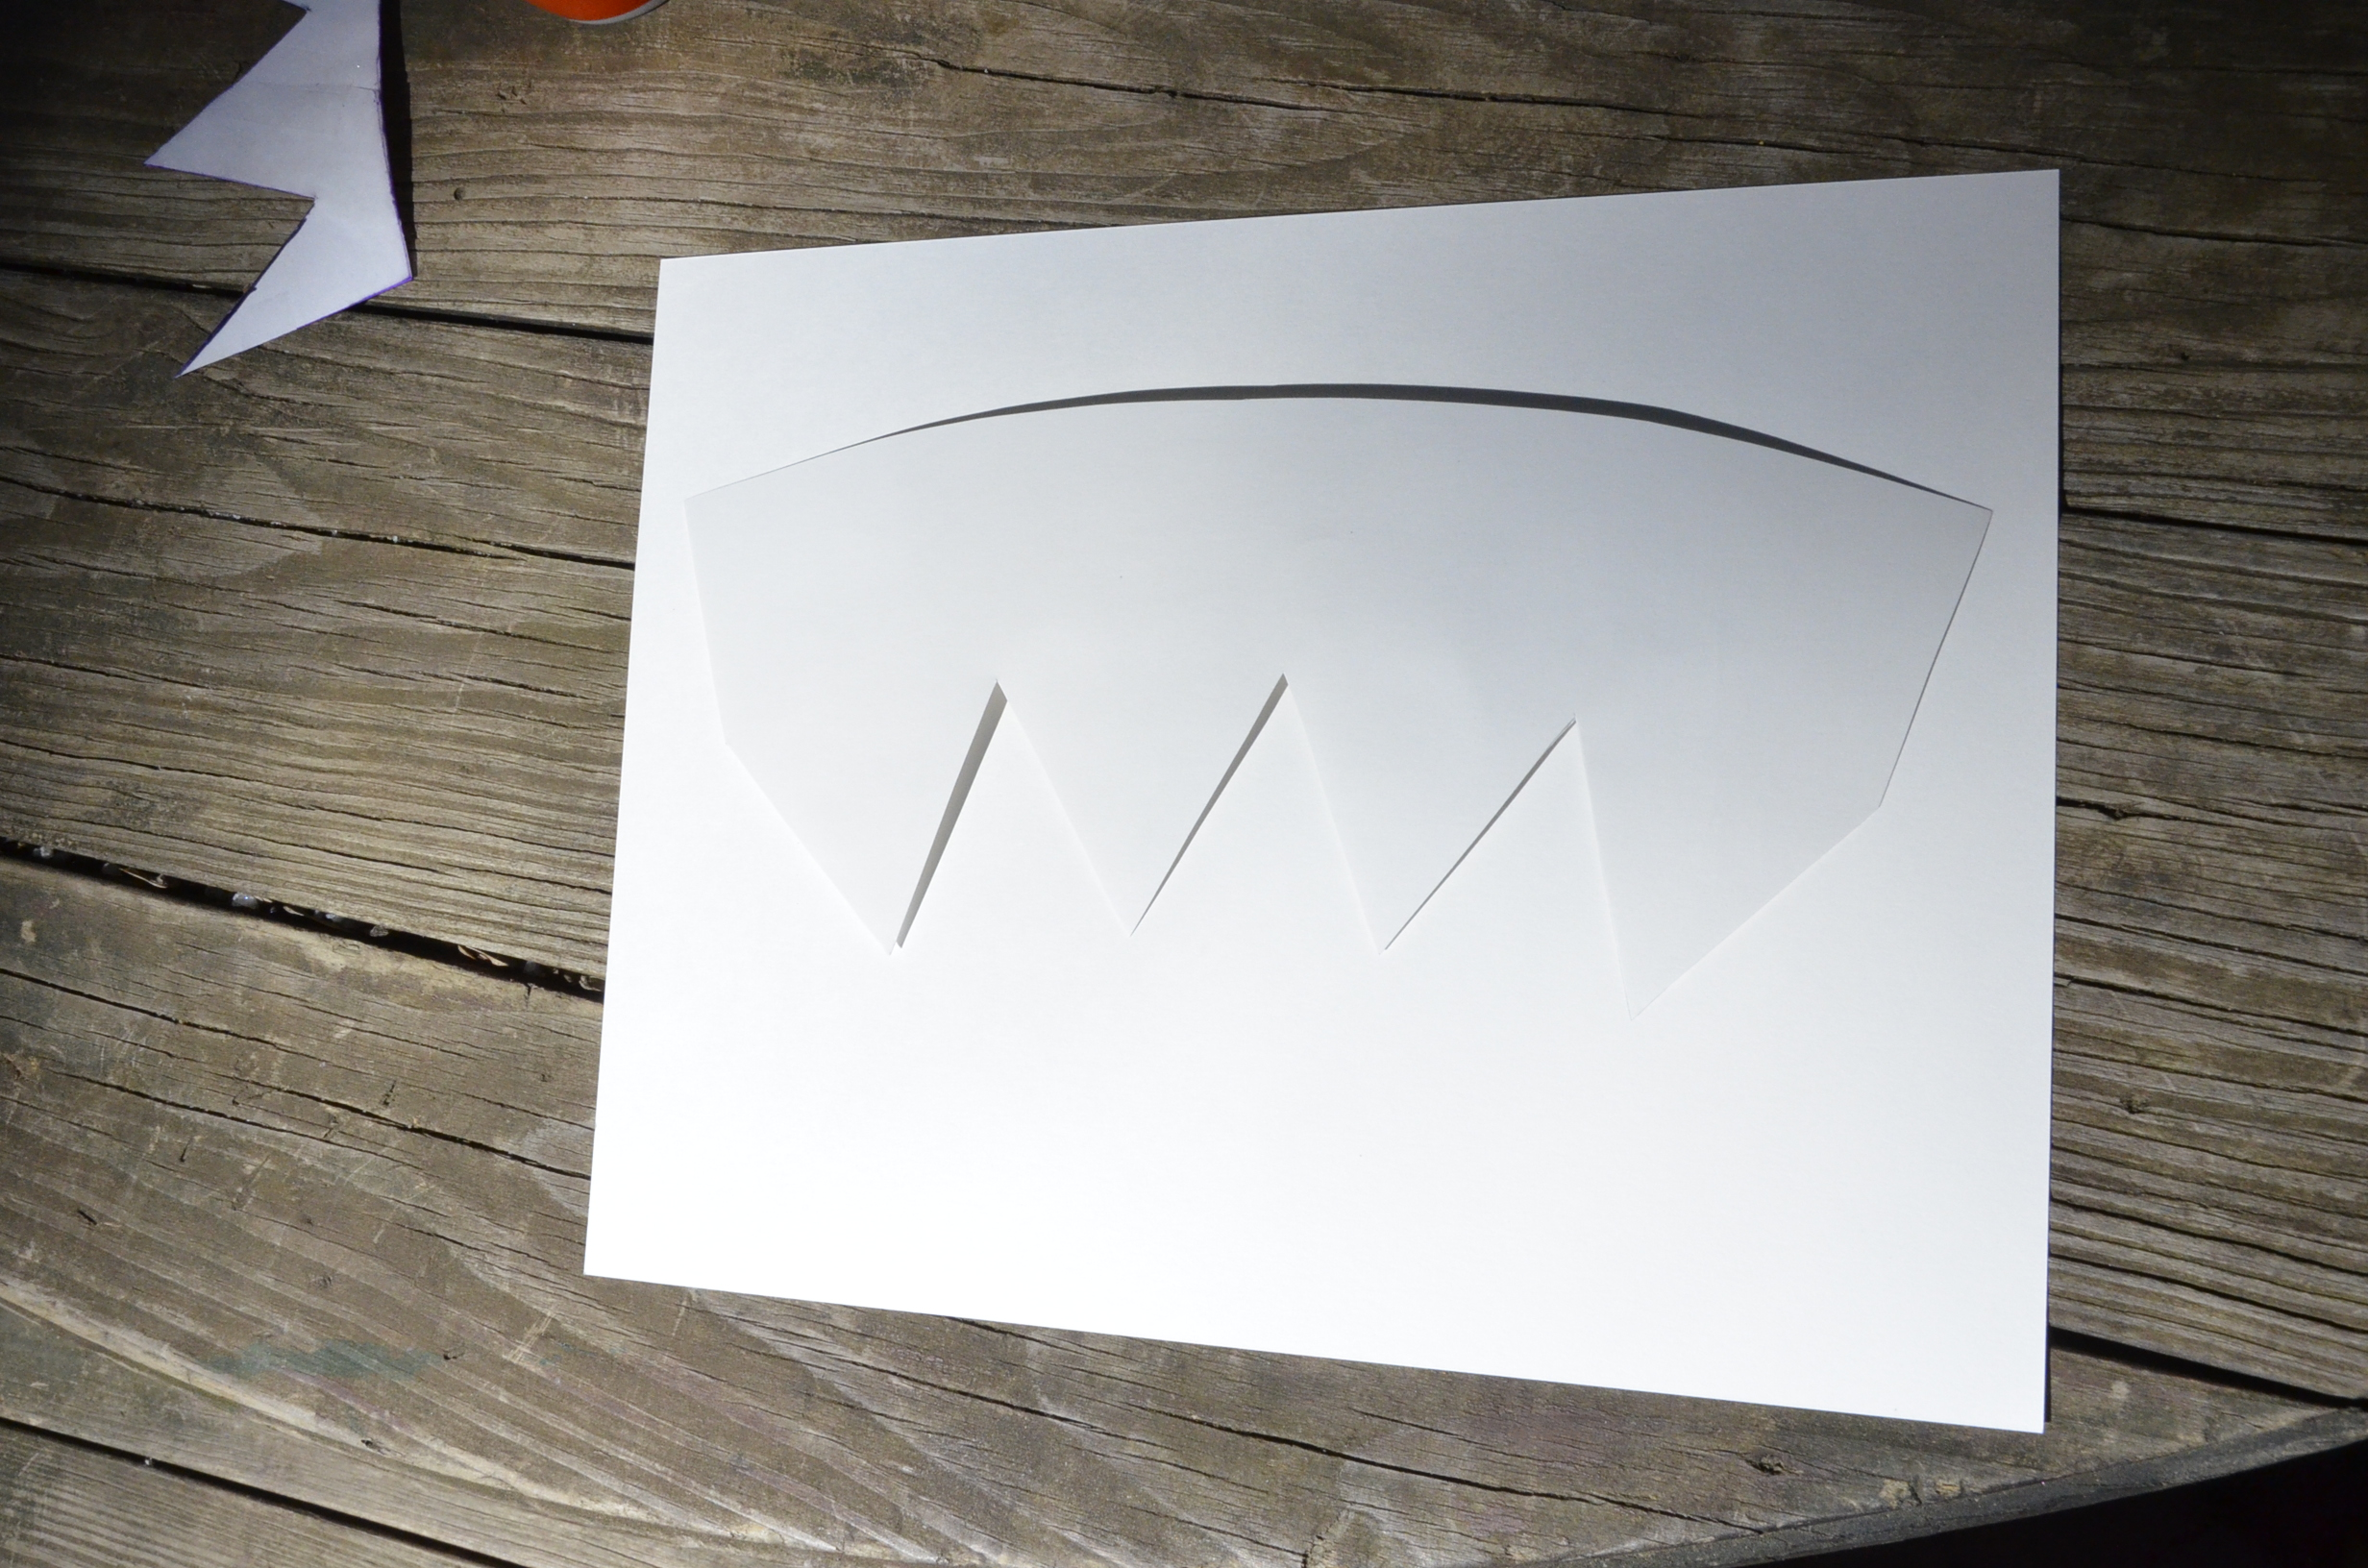 Heavy-weigh paper template is taped to the backside of the decal sheet to trace for precise cutting.